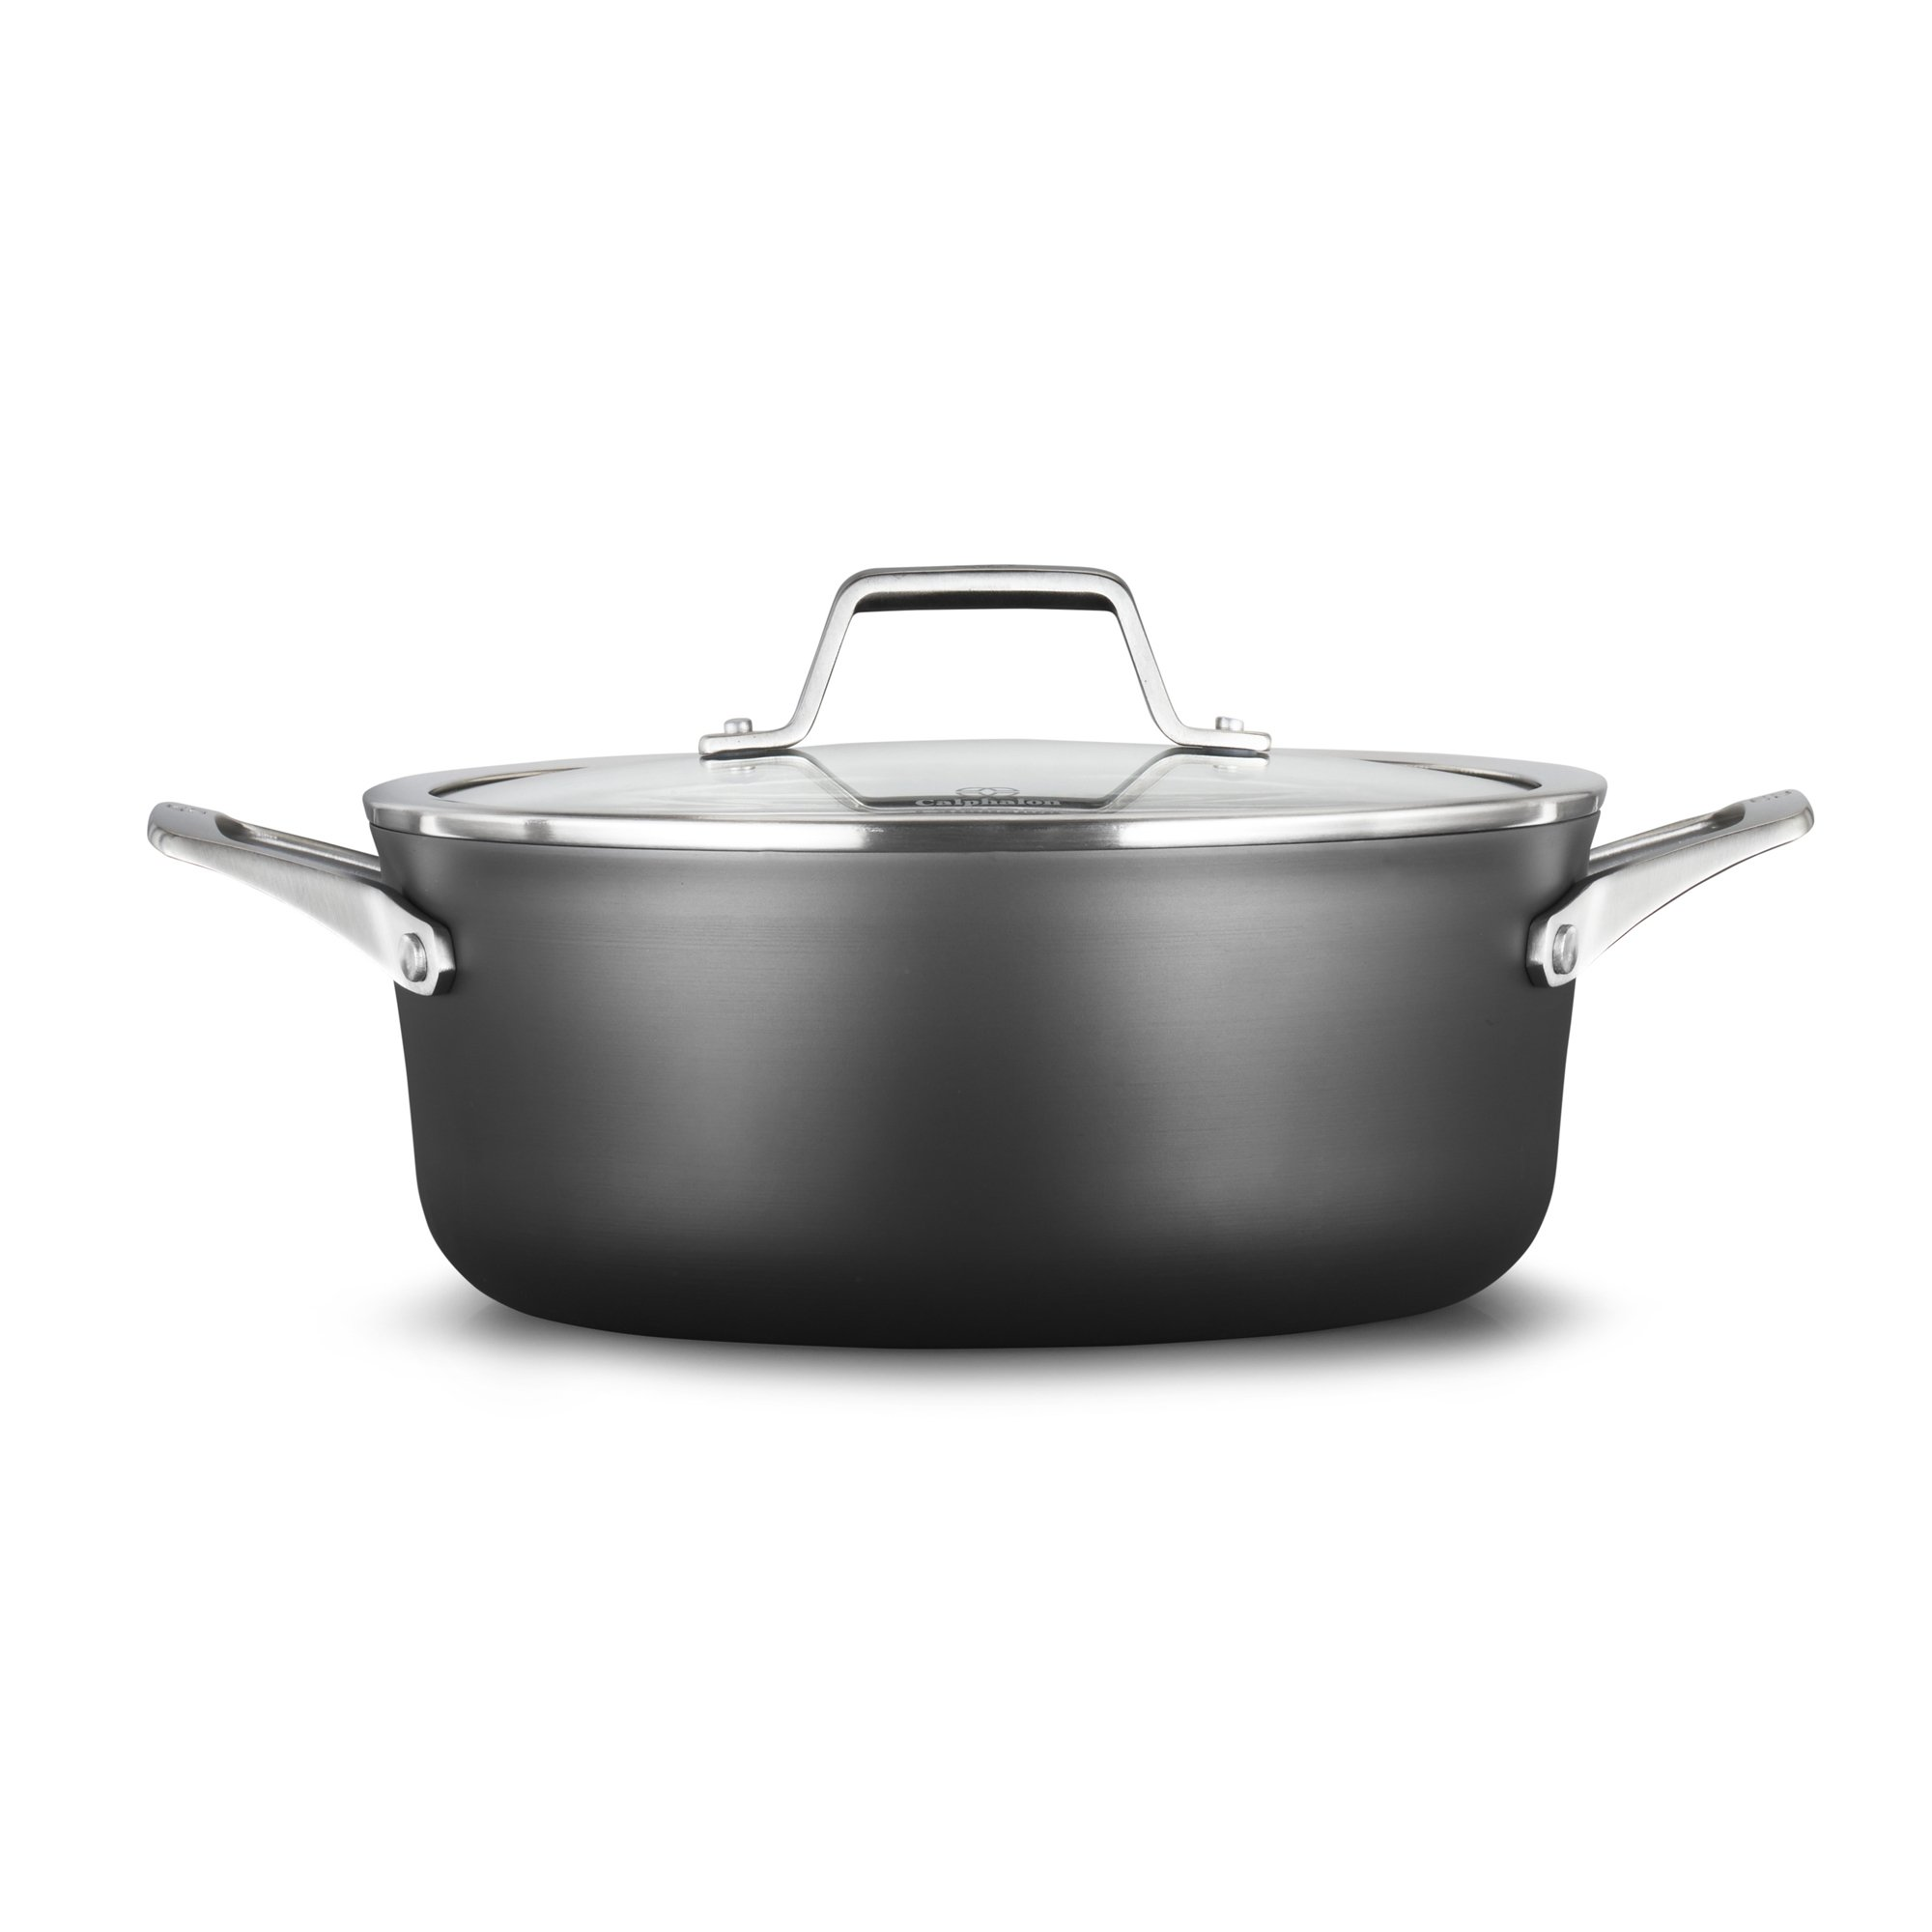 Calphalon Premier Hard-Anodized Nonstick 5-Quart Dutch Oven with Cover